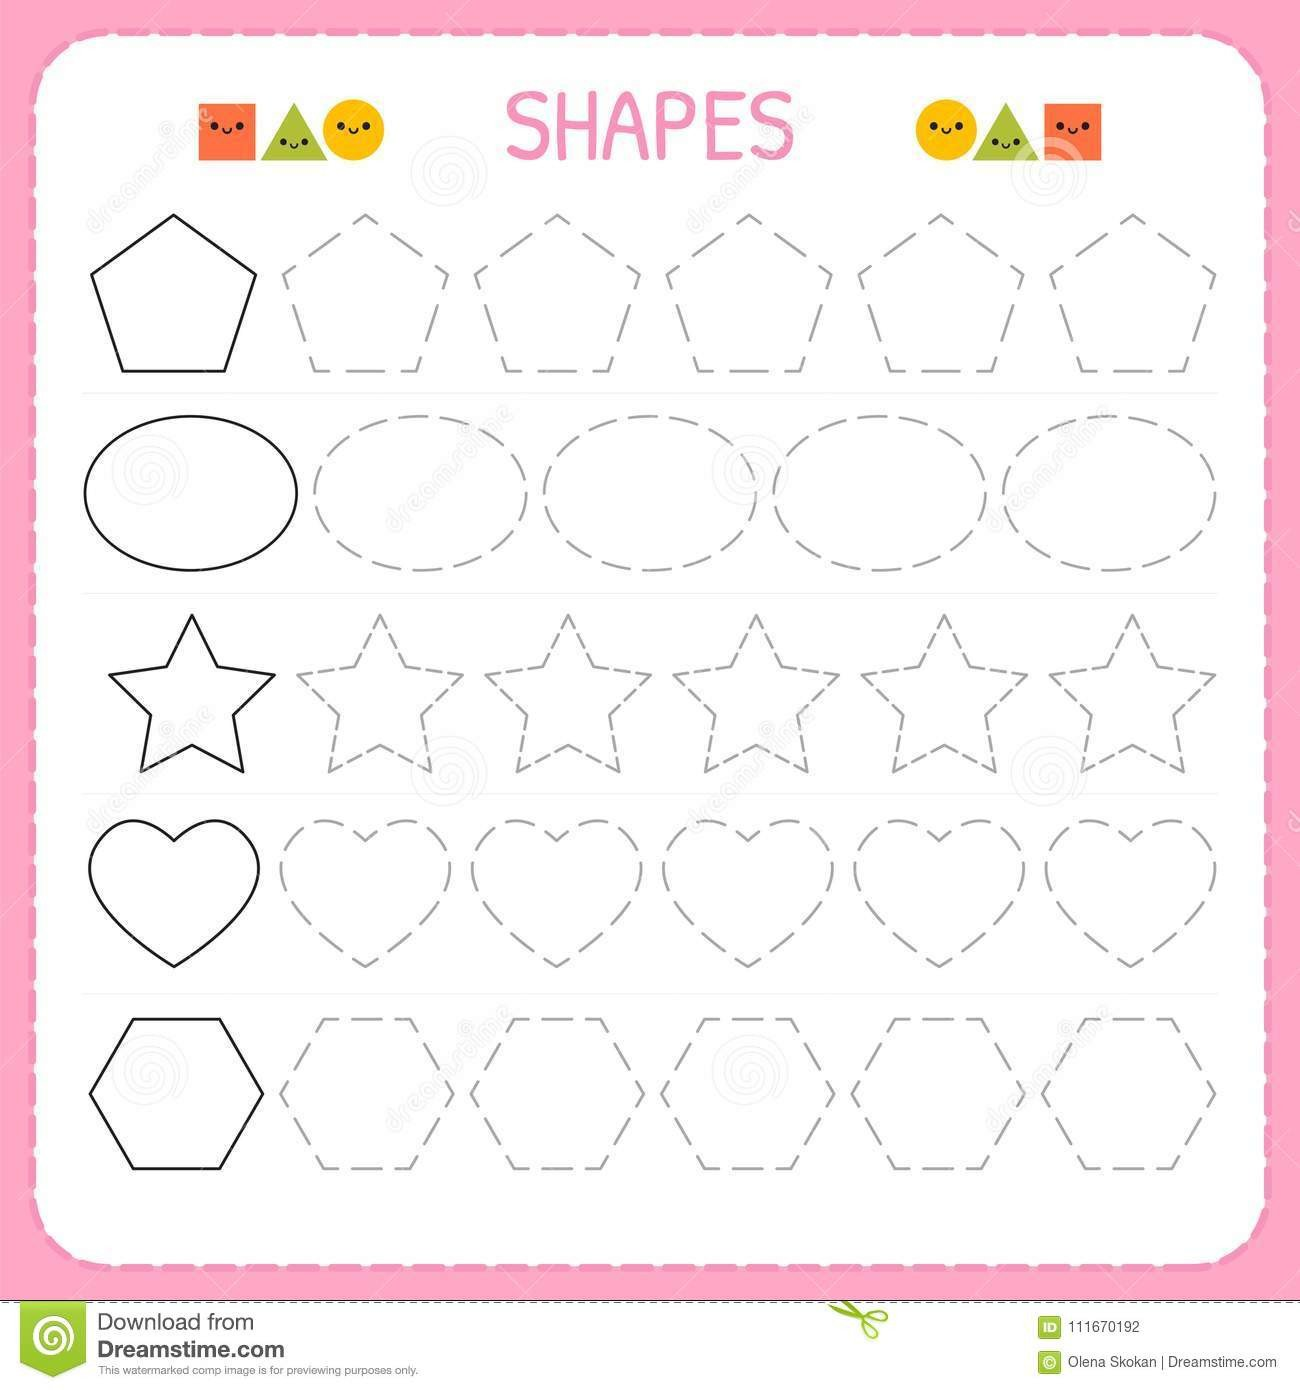 Sorting Shapes Worksheets First Grade Worksheet First Grade Word Wall Cards Christmas Games